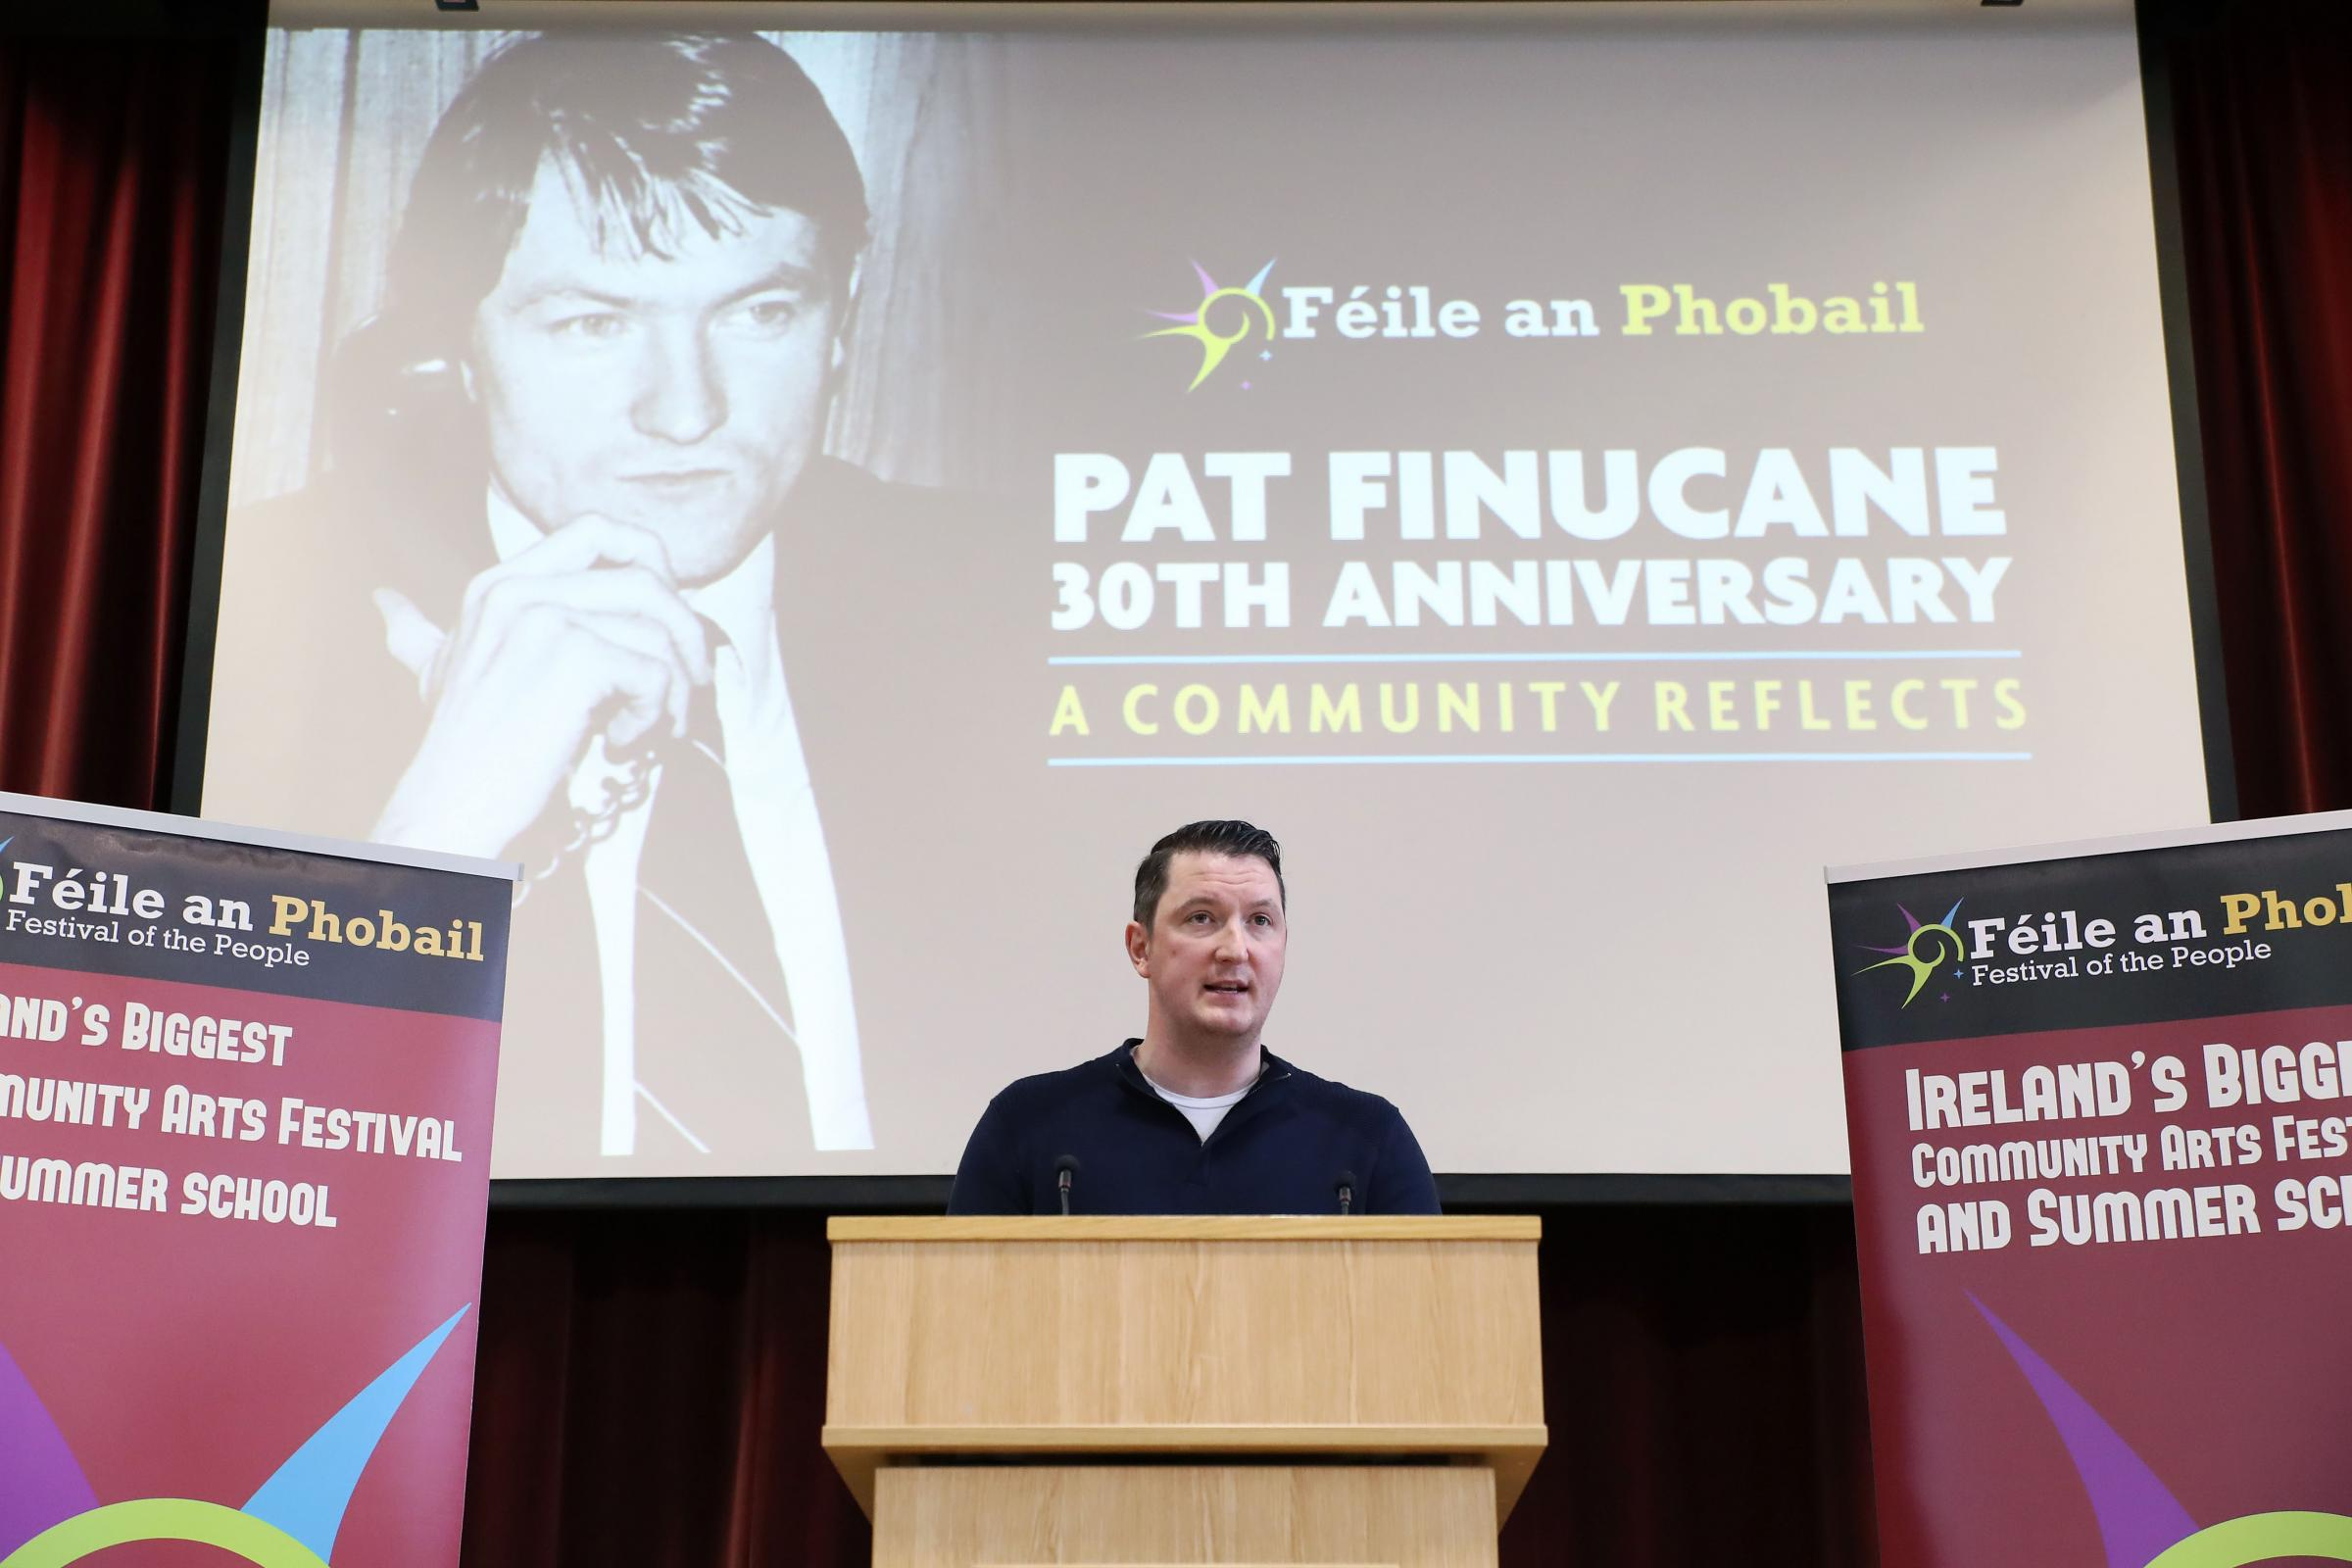 John Finucane, son of Pat